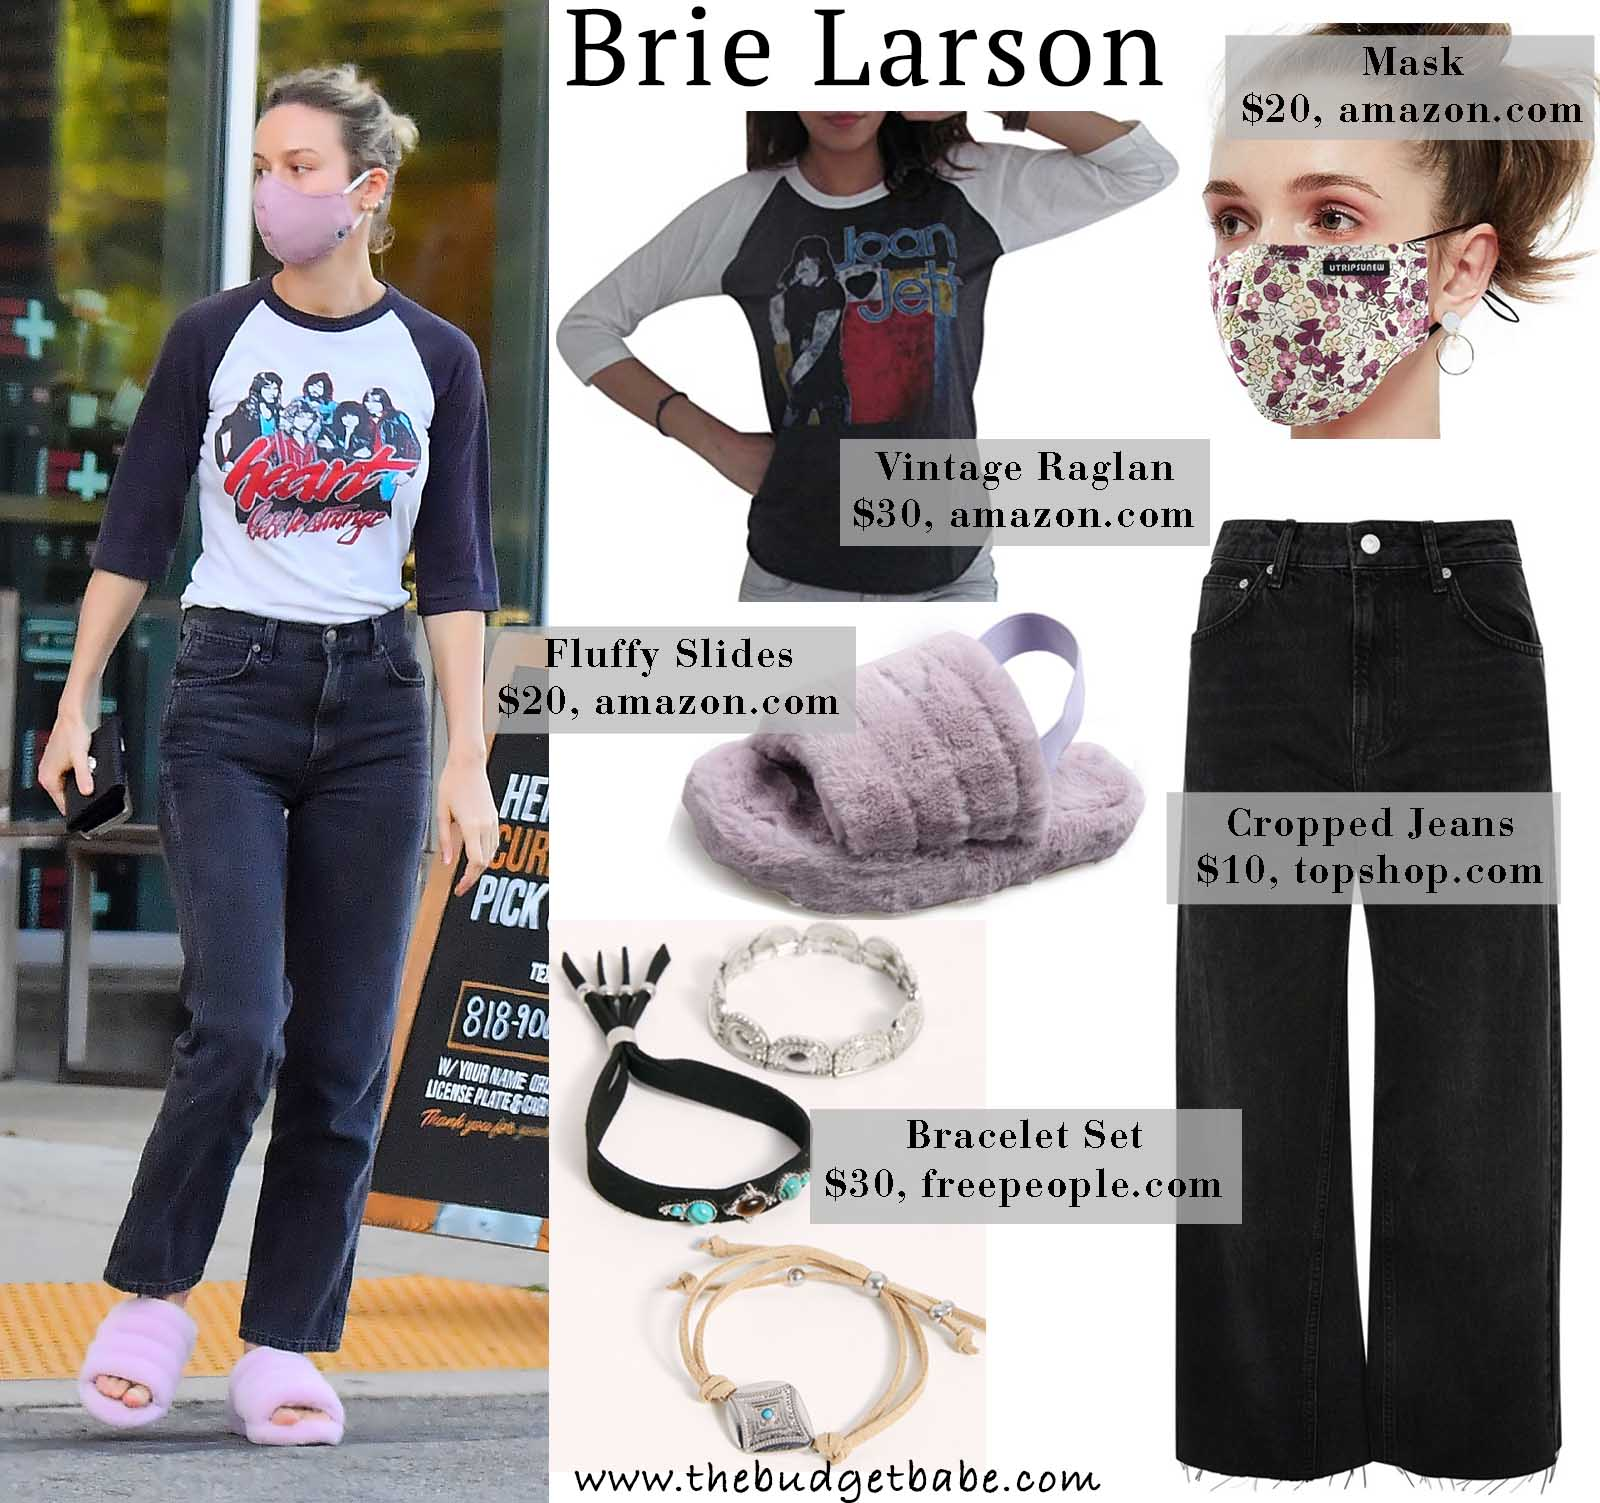 Brie Larson rocks a band tee and jeans.